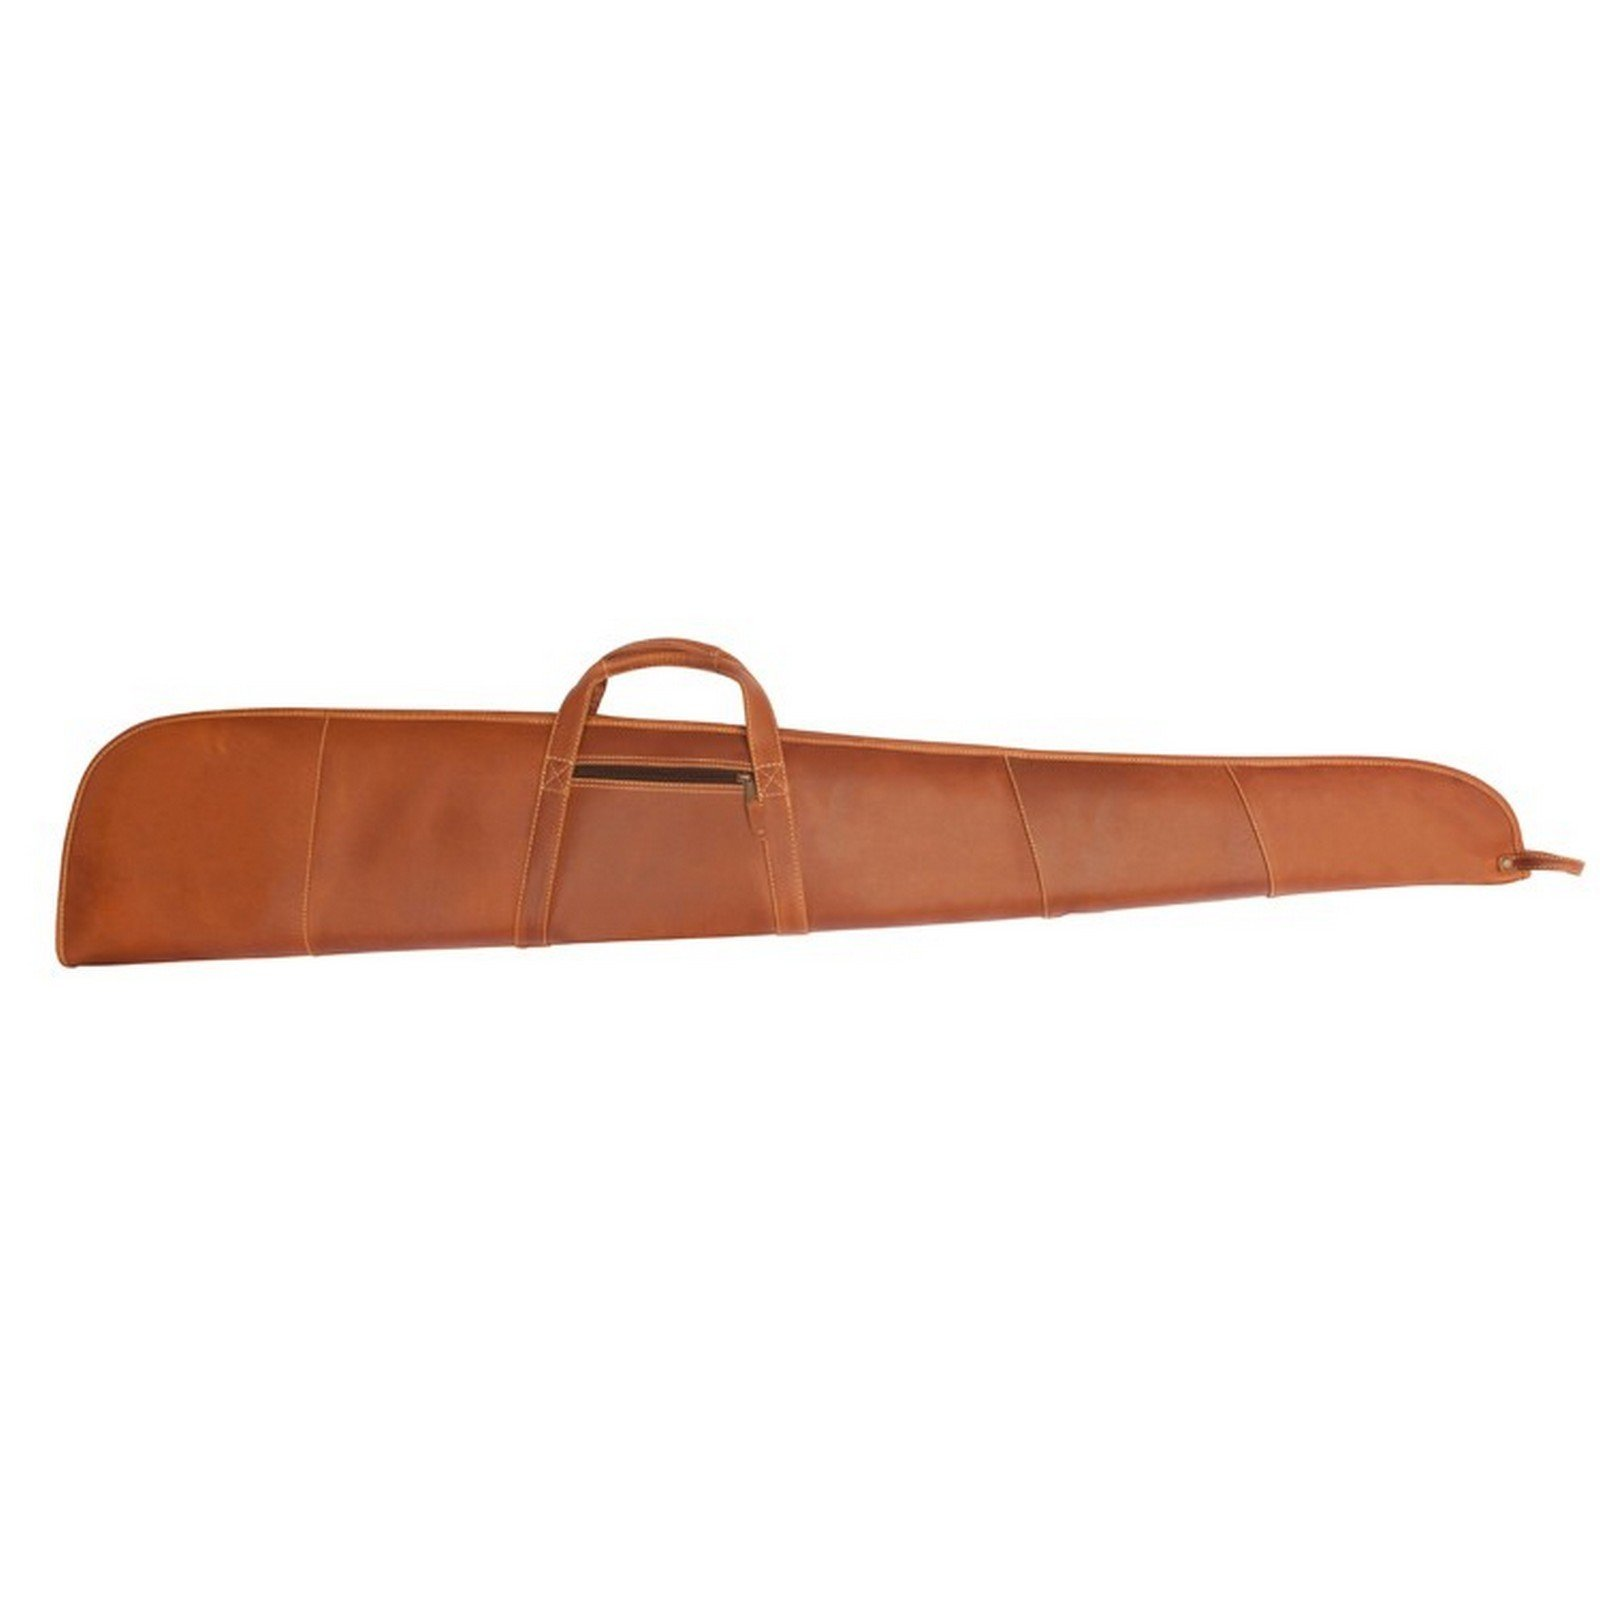 Canyon Outback Antelope Canyon 51 Inch Rifle Case-Tan, Distressed Tan